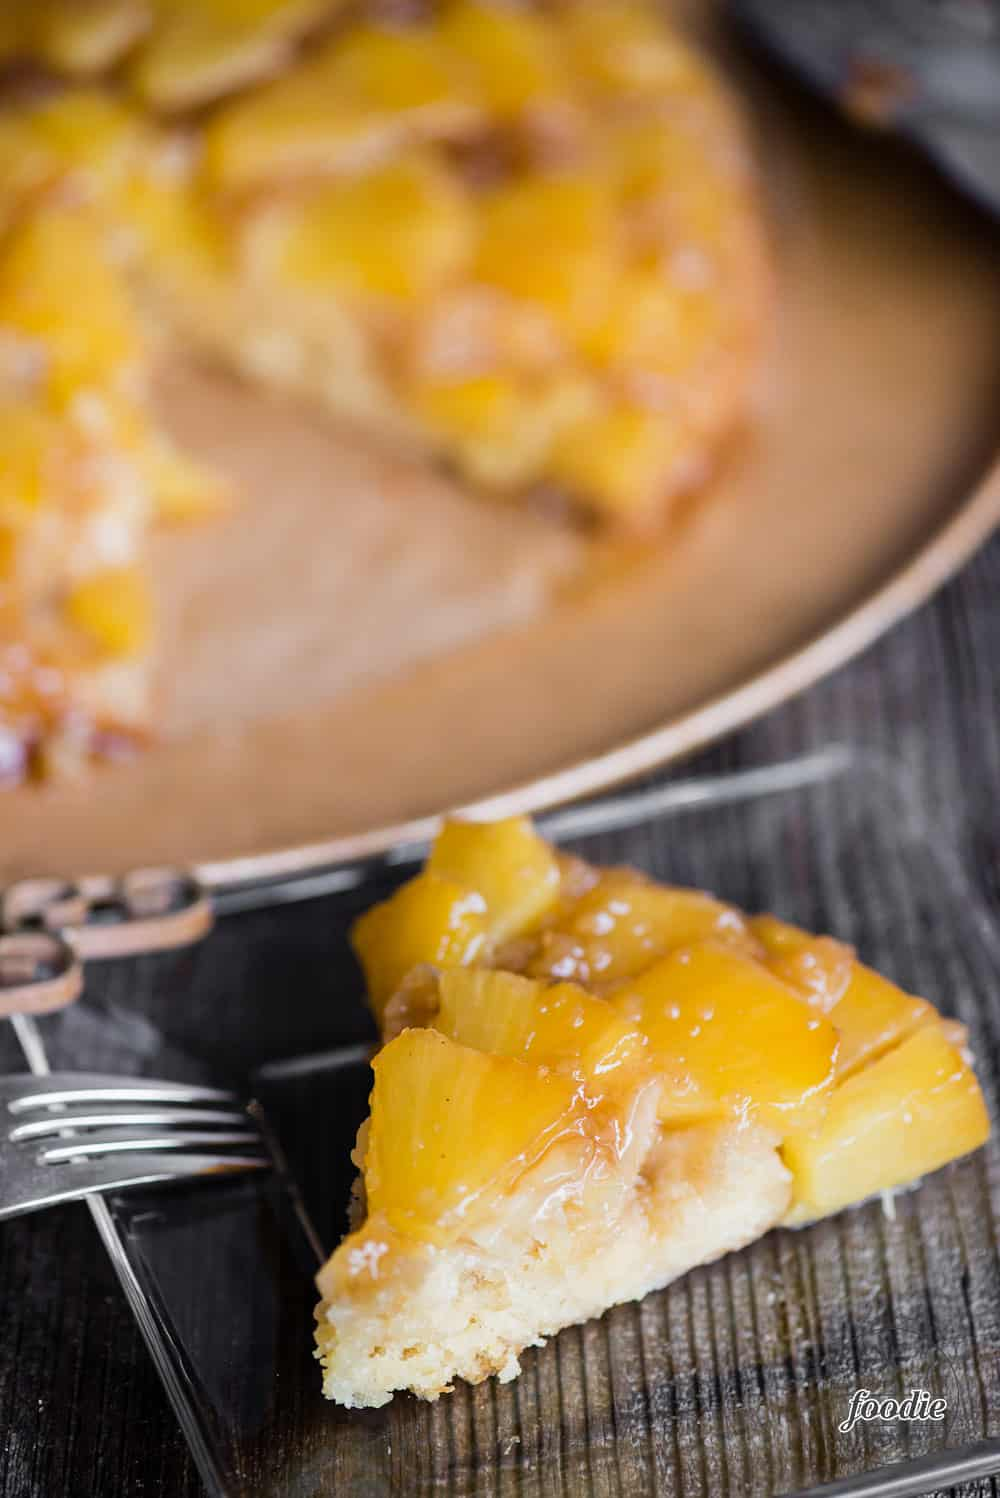 homemade cake with fresh pineapple